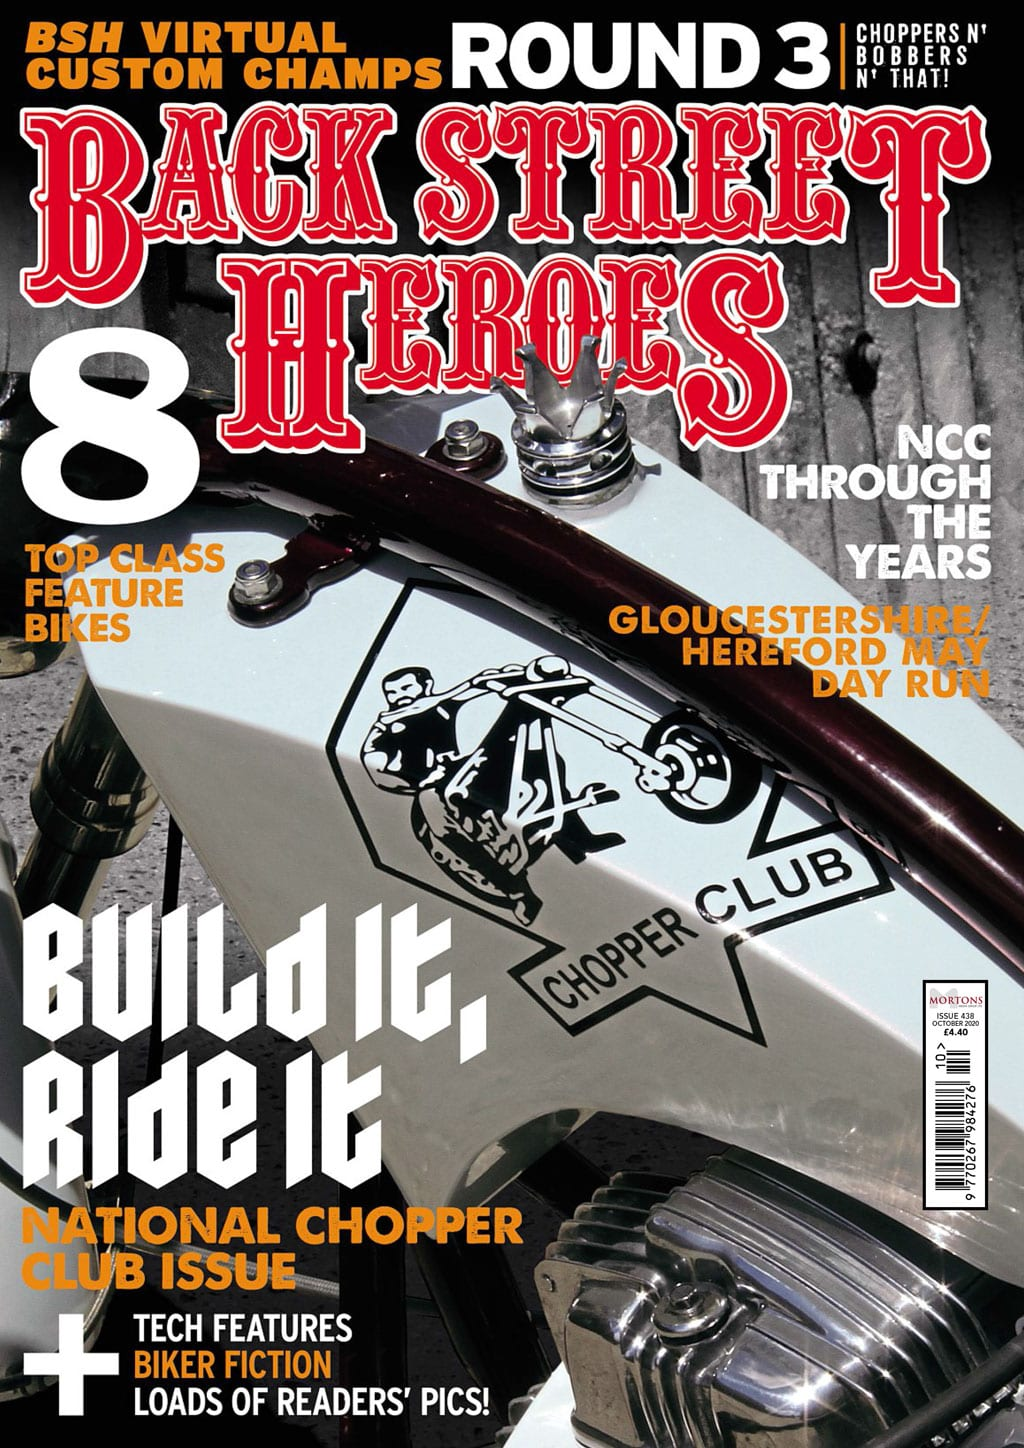 Back Street Heroes cover